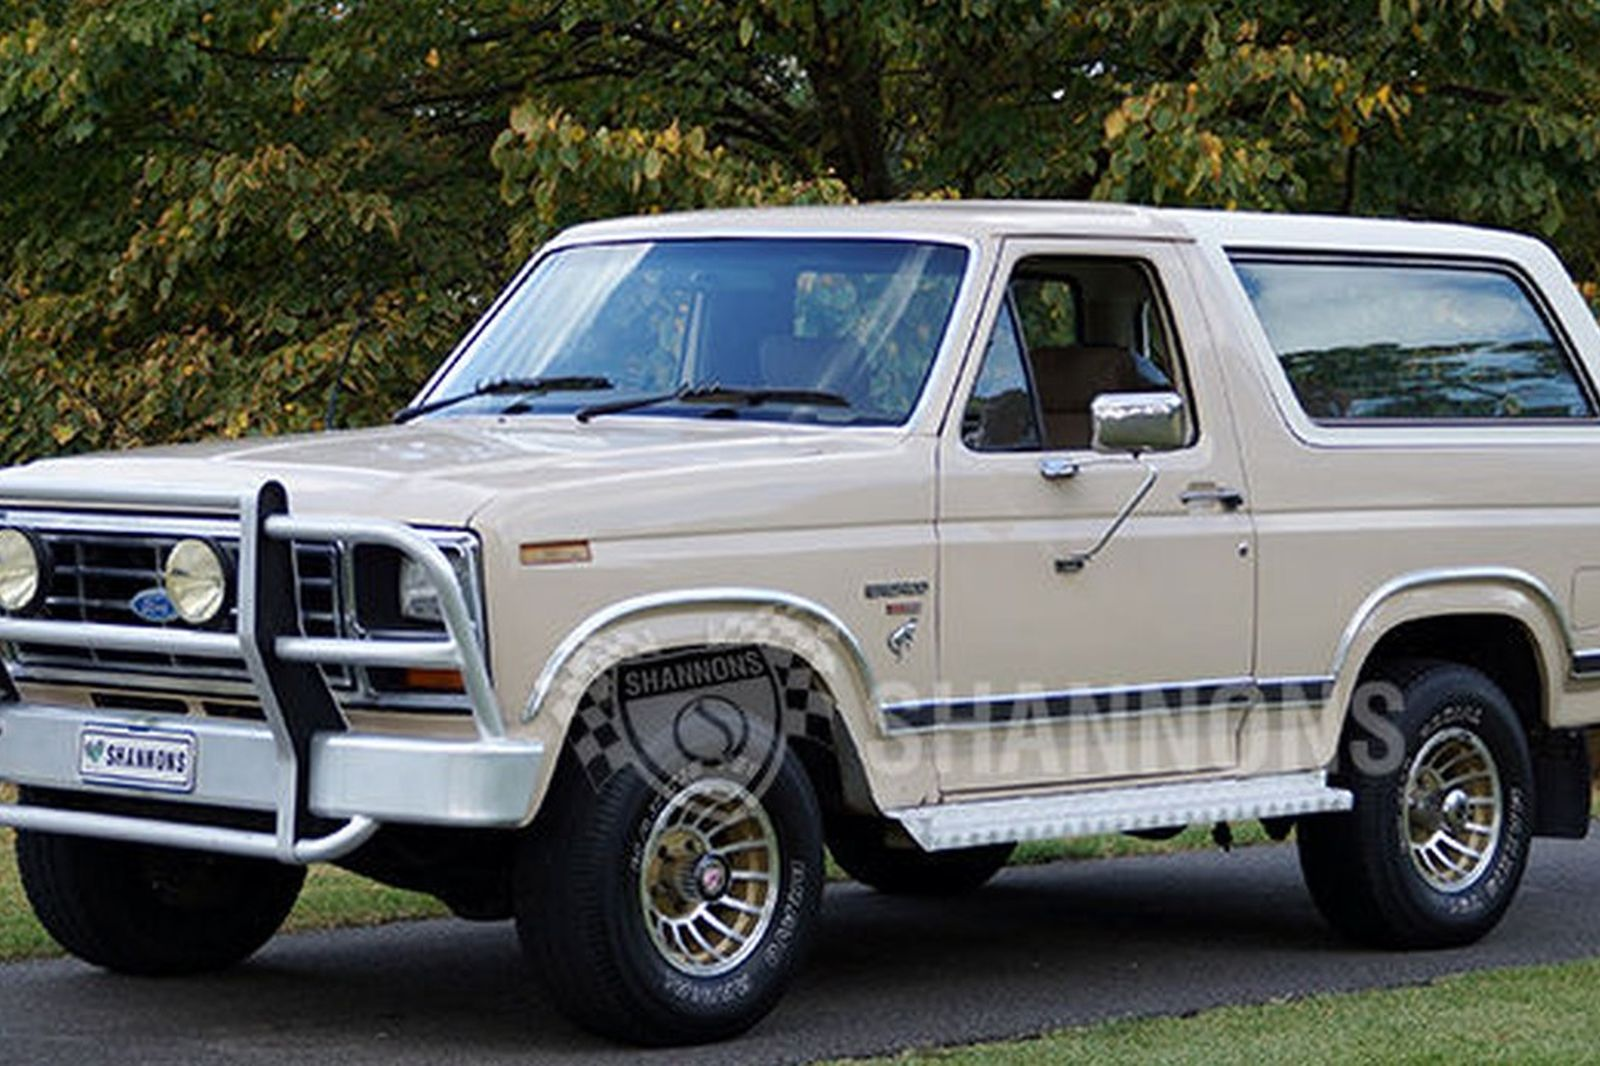 sale ca torrance bronco img vehicle ford make for in image model listings broncos